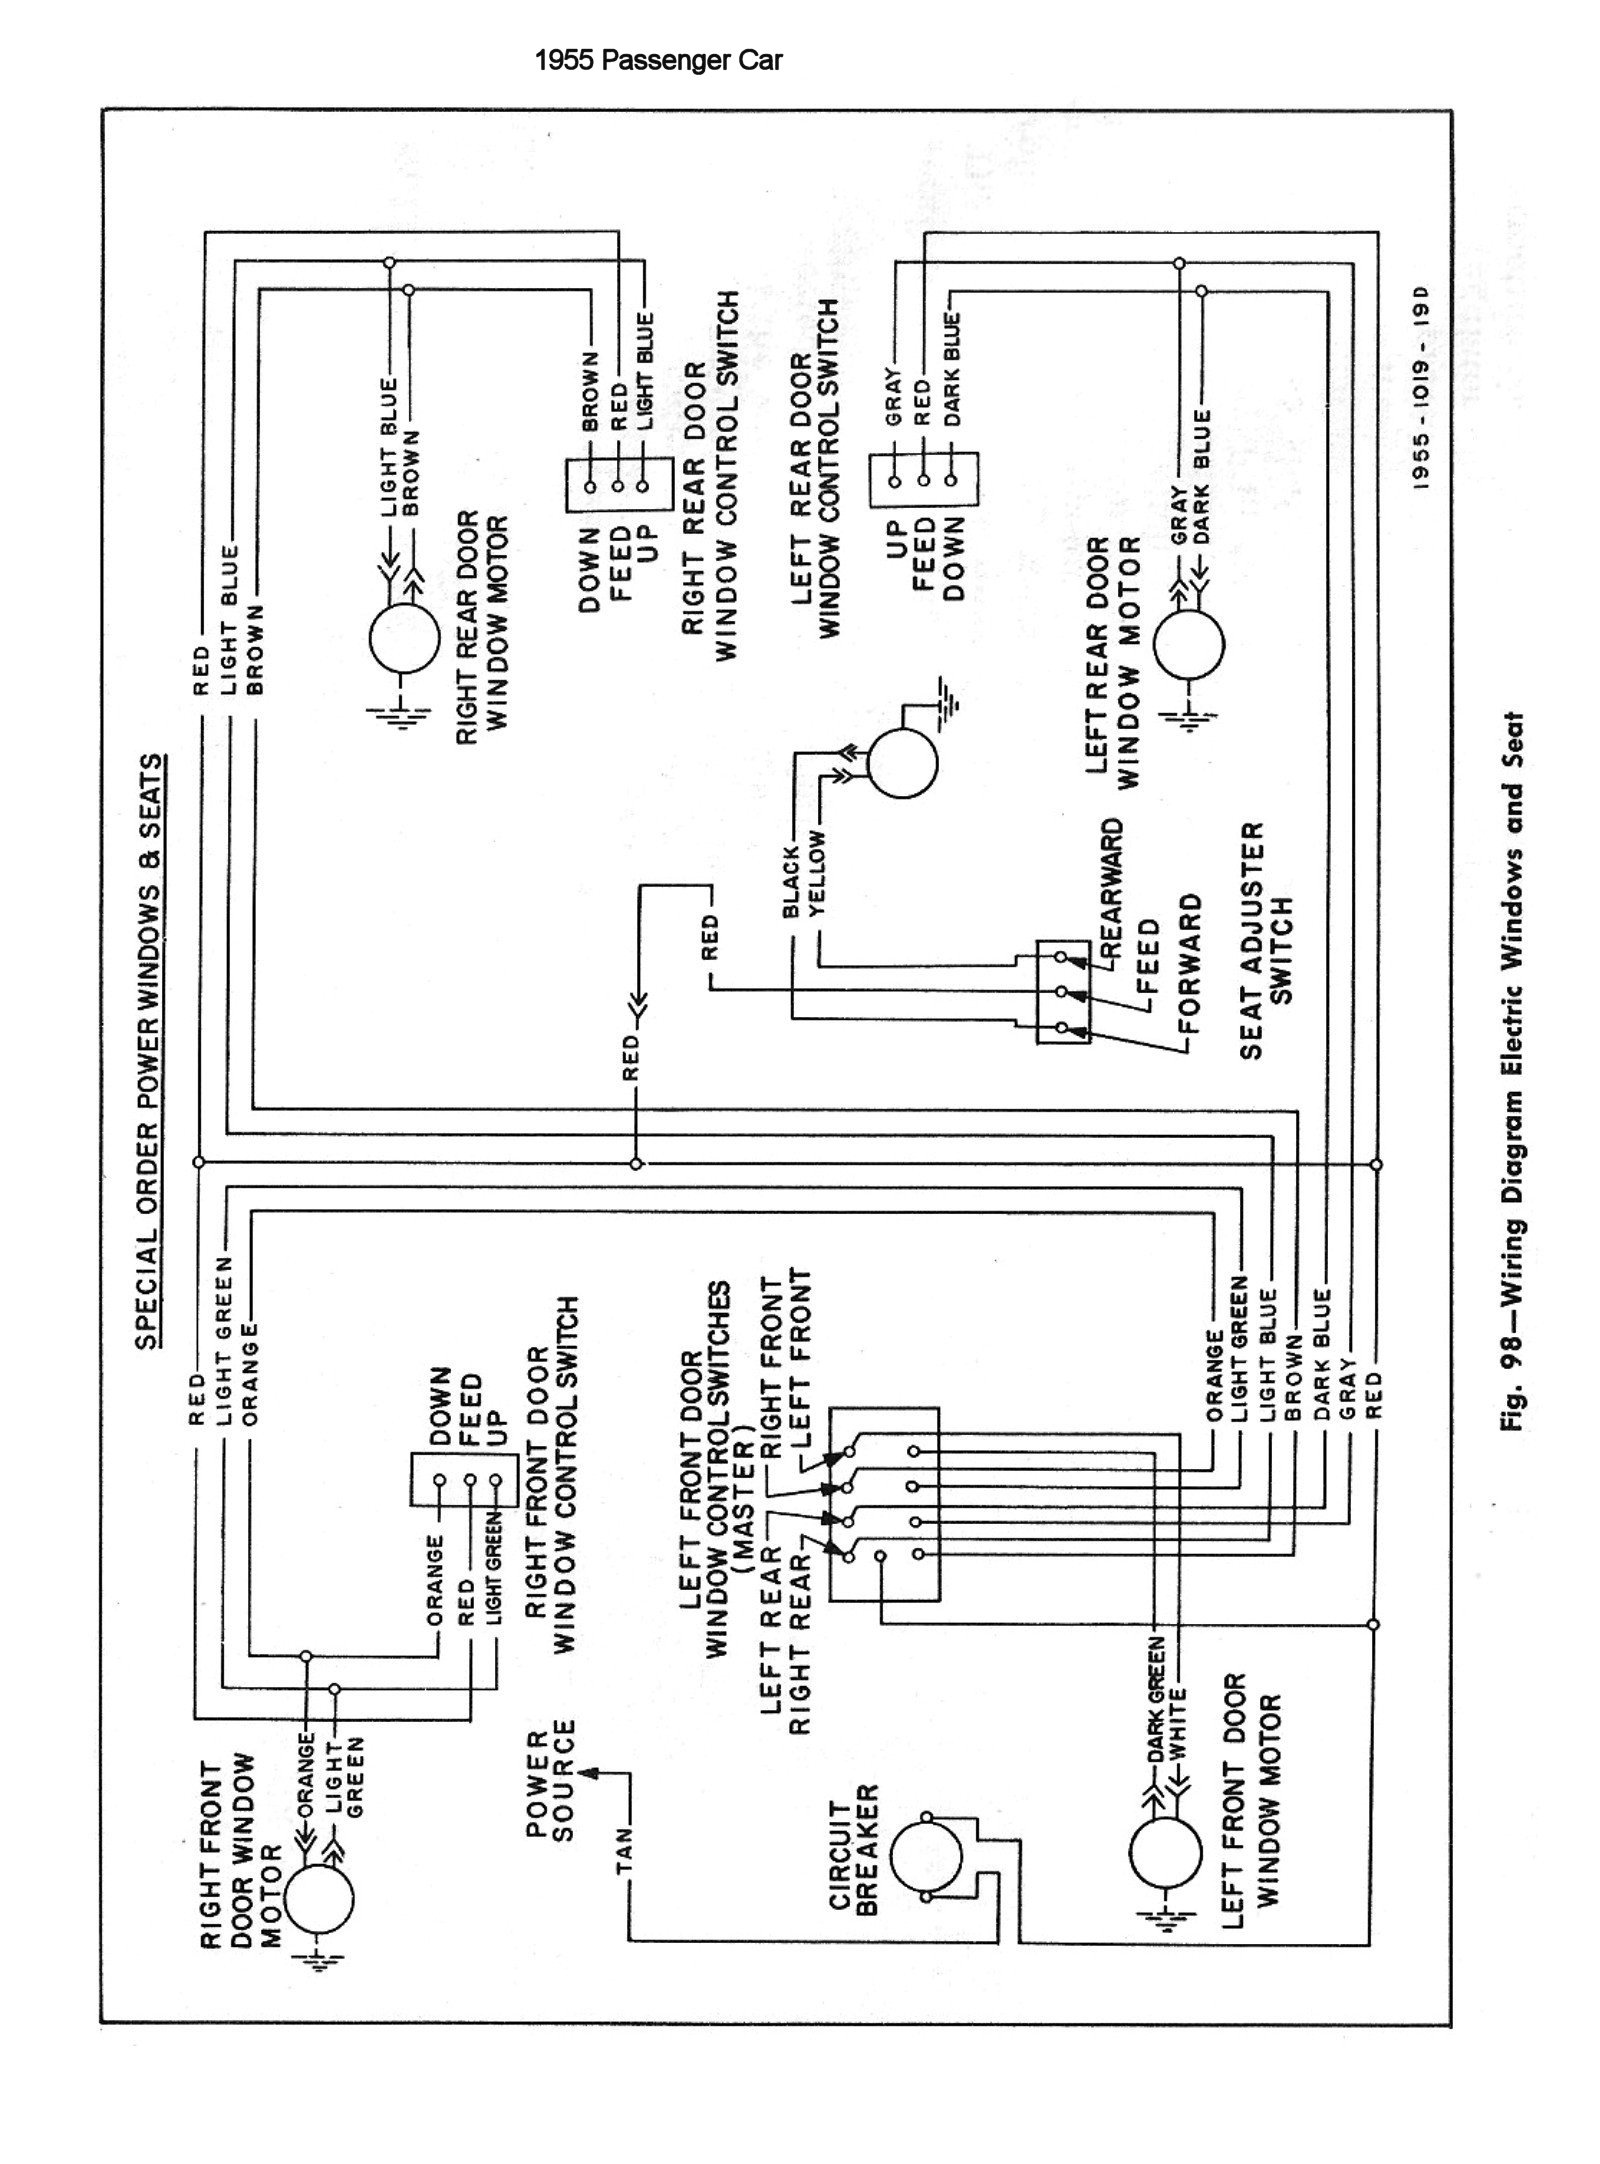 1958 Chevrolet Delray Wiring Diagram | Wiring Liry on